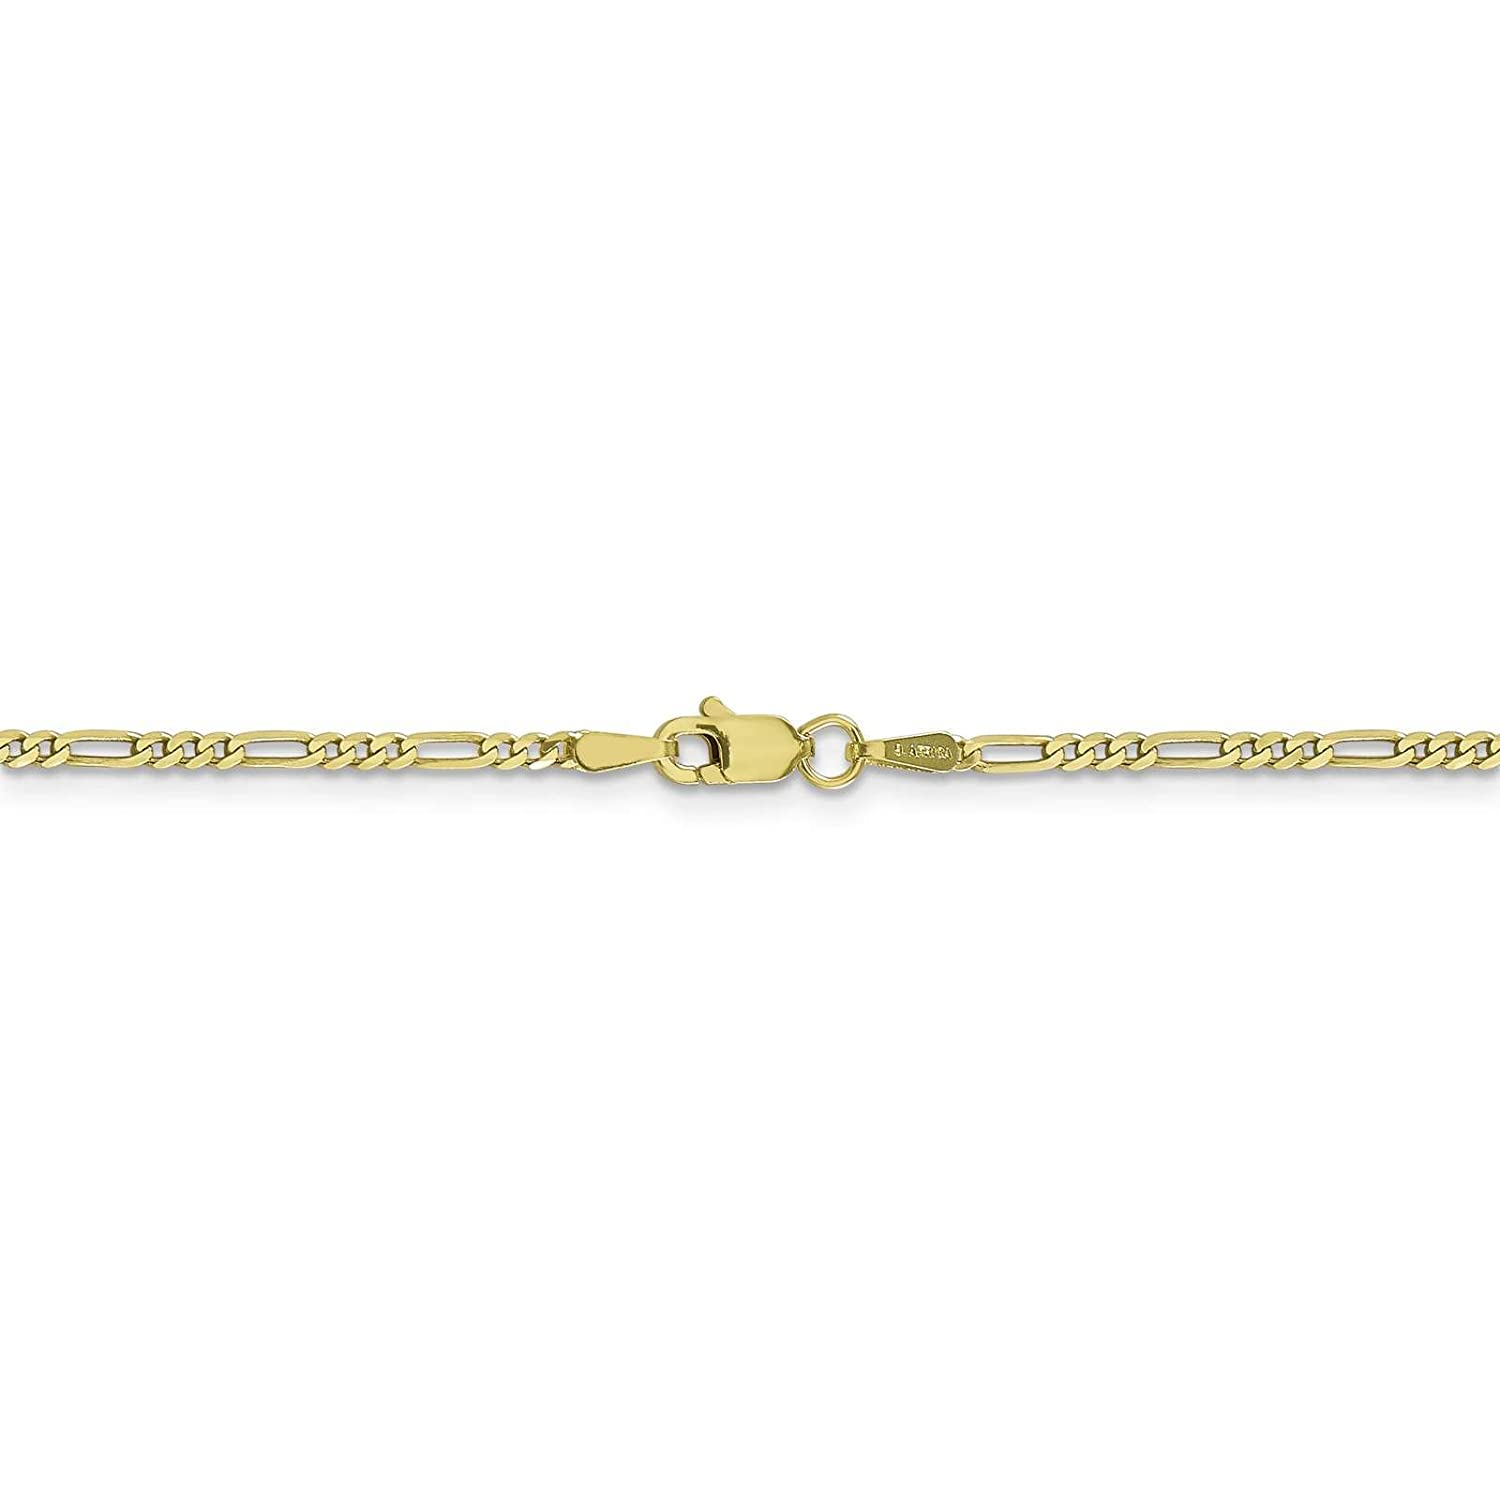 10k Yellow Gold Polished 1.7mm Figaro Link Chain Bracelet 7-30